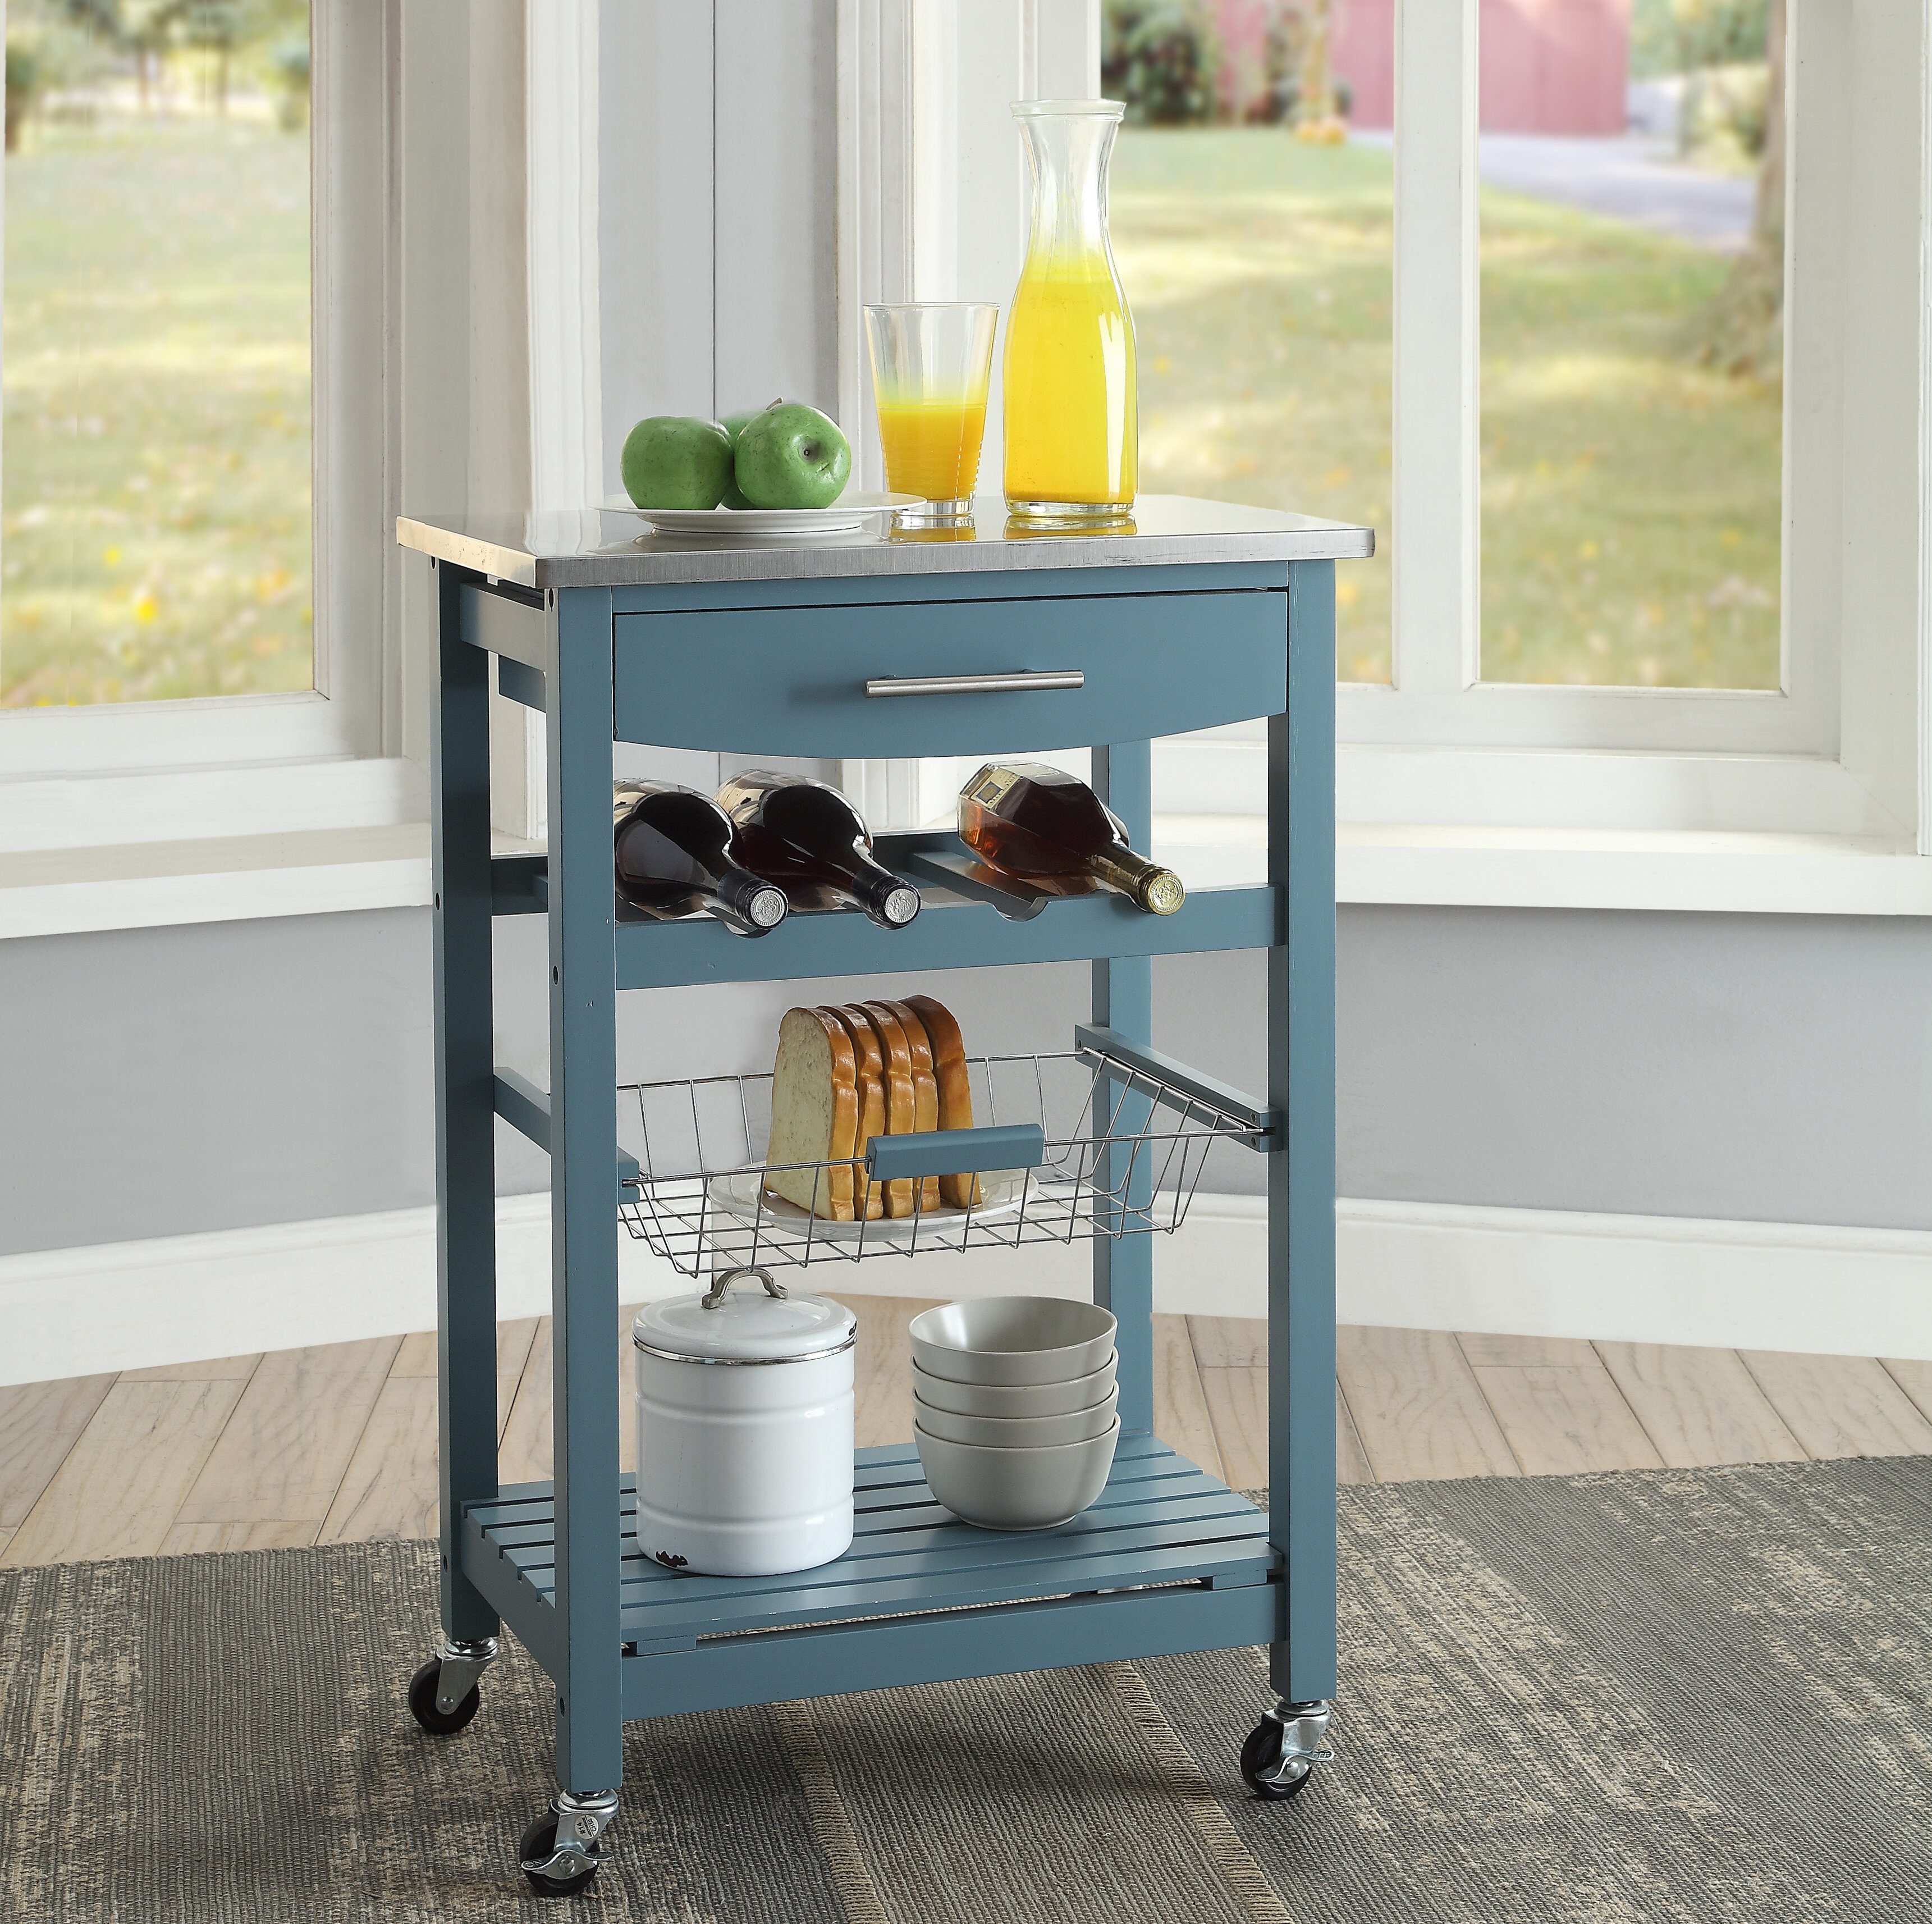 Highland Dunes Haviland Kitchen Cart with Stainless Steel ...